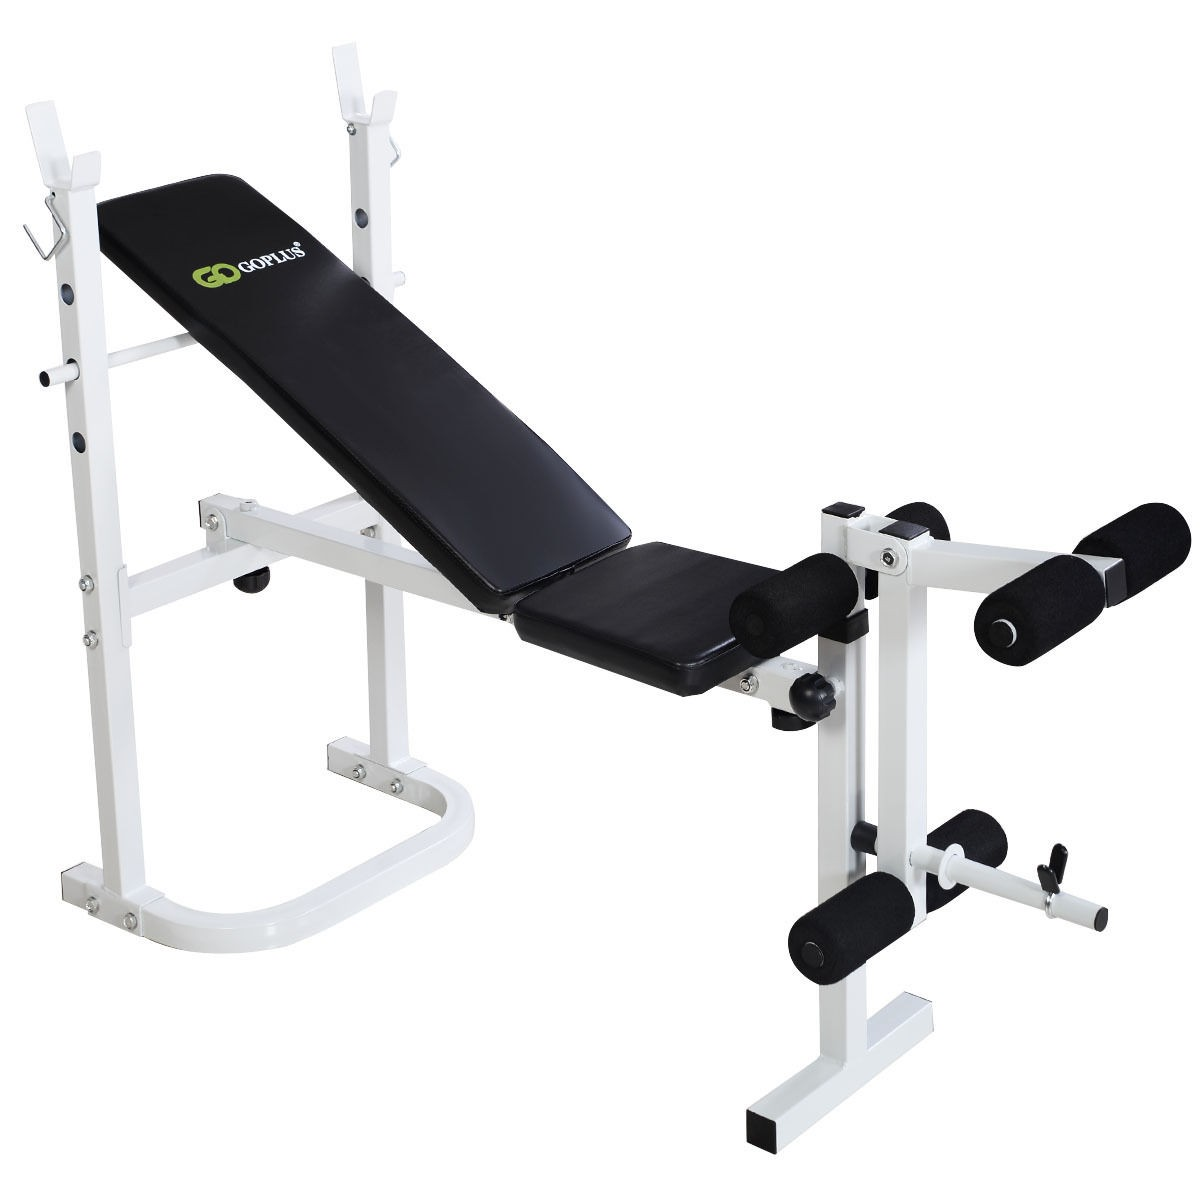 Folding Body Solid Olympic Weight Bench Incline Lift Workout Press Home Ebay